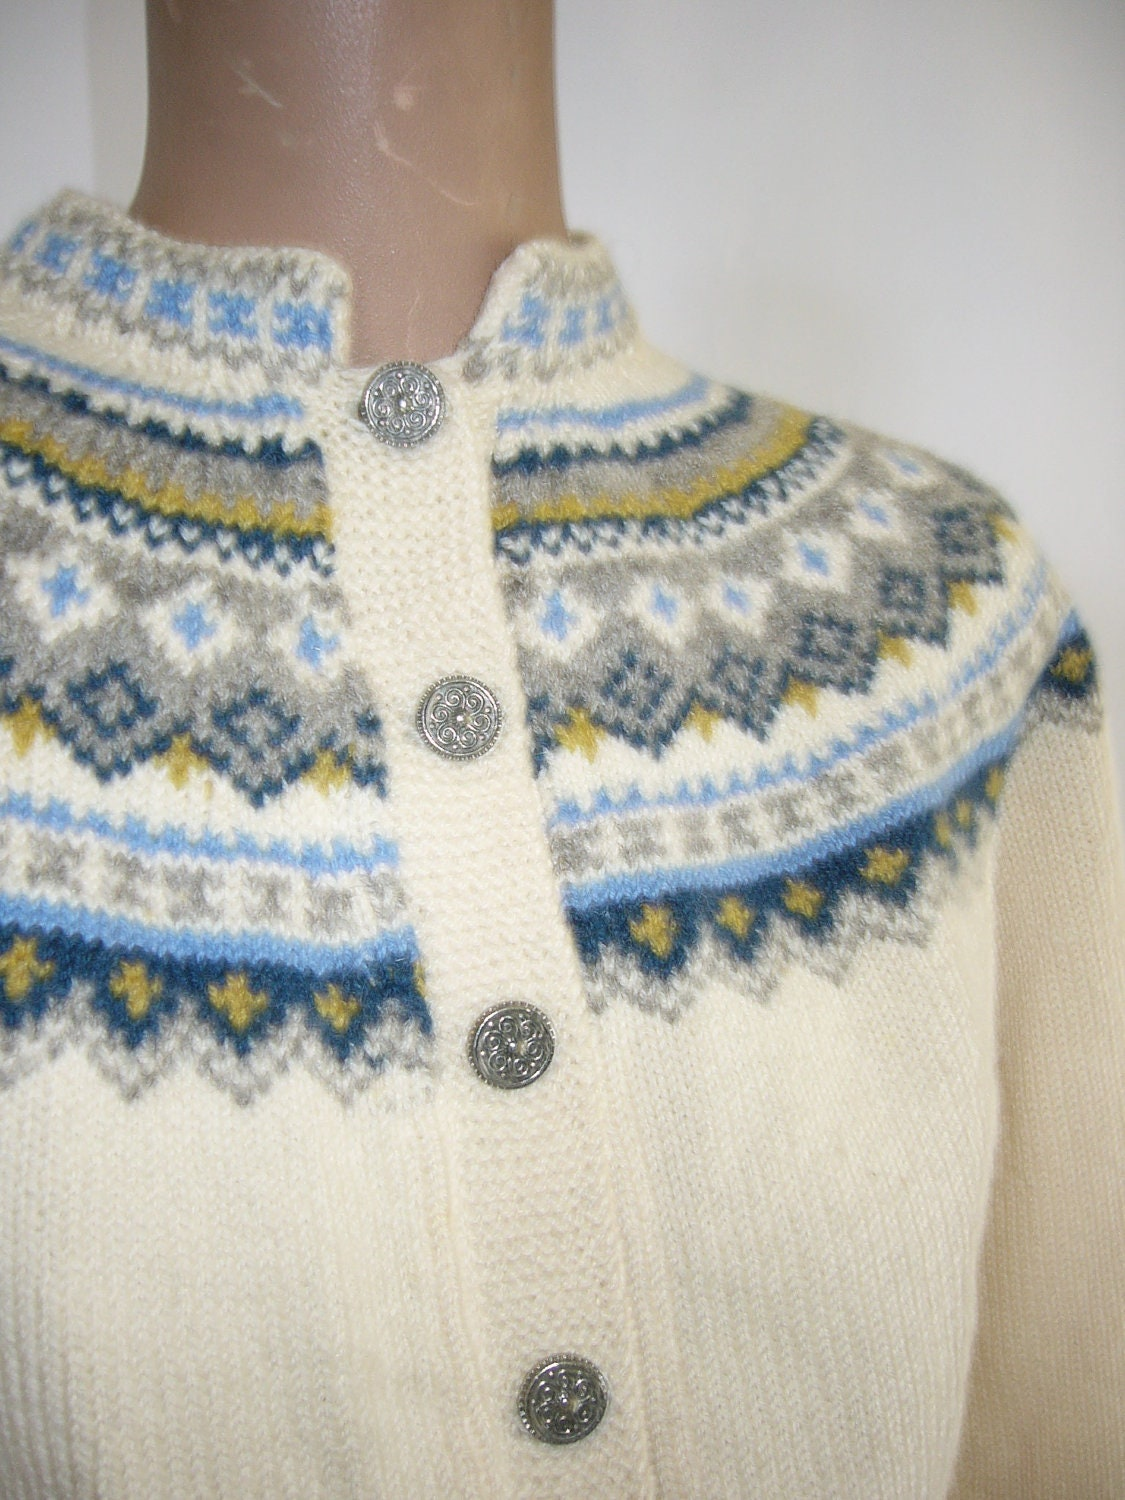 Hand Knit Norwegian Cardigan Sweater Pewter Buttons Hilda Ege